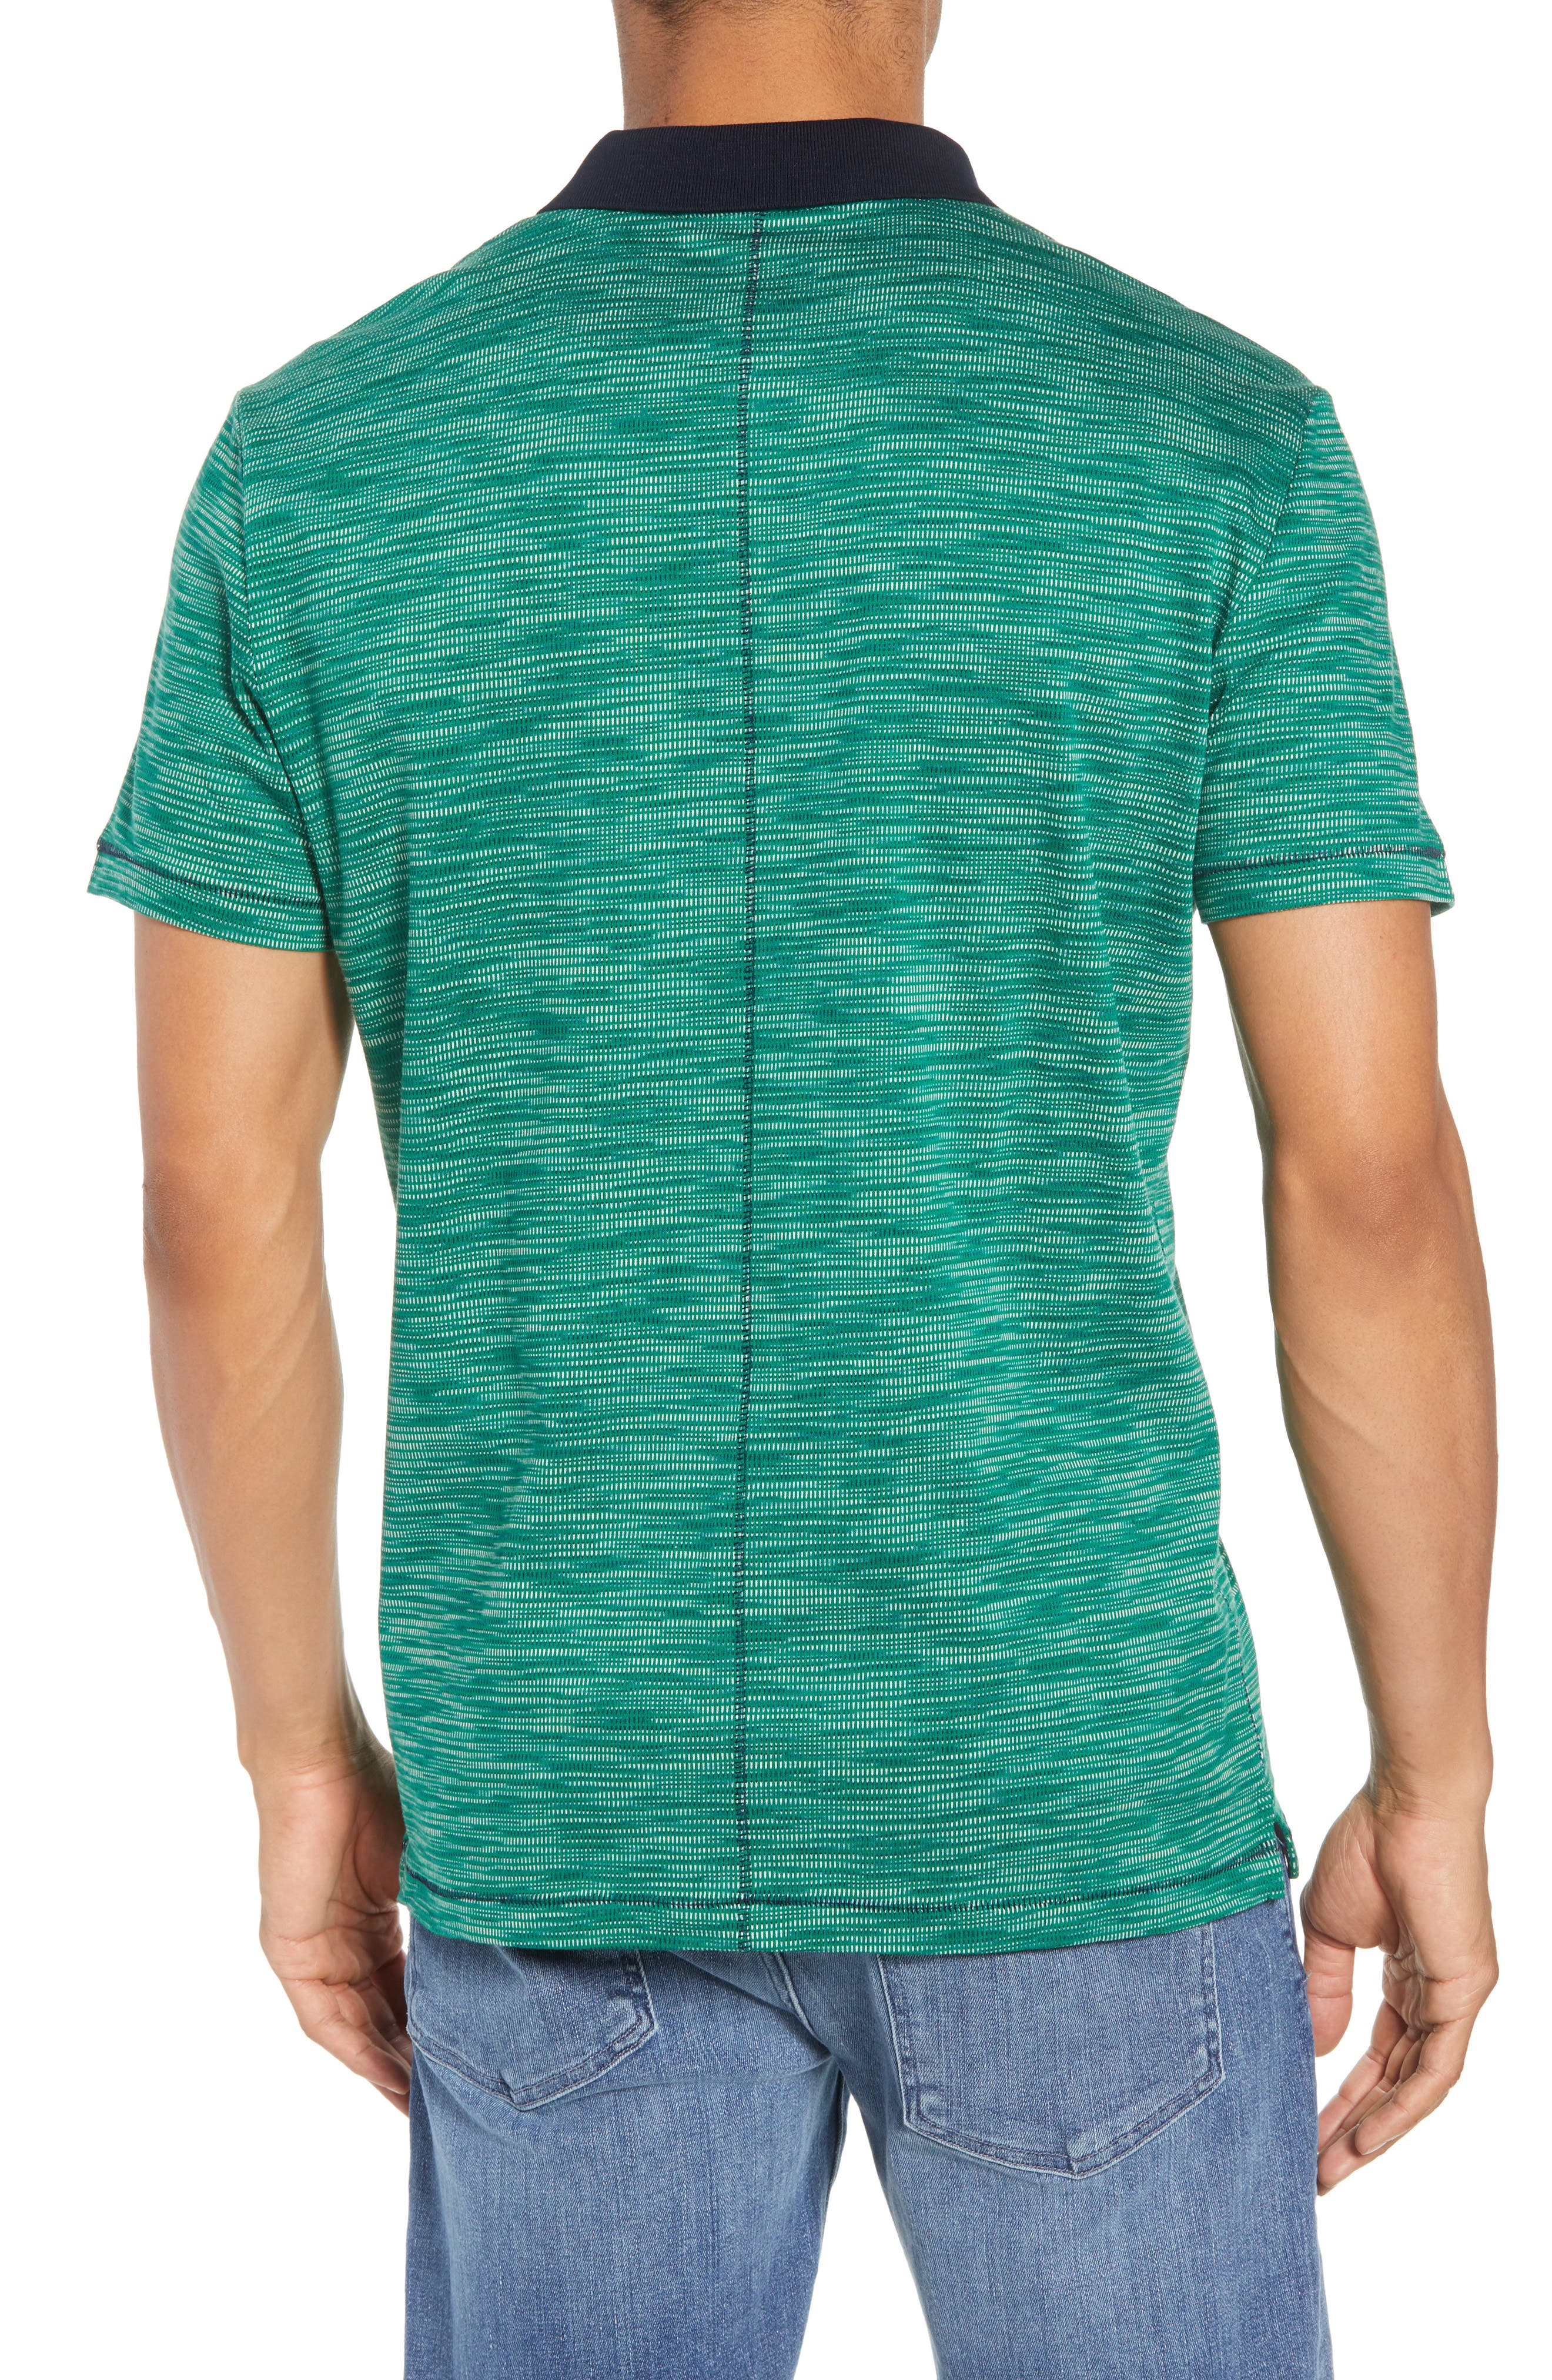 Tay Street Regular Fit Polo,                             Alternate thumbnail 2, color,                             Emerald